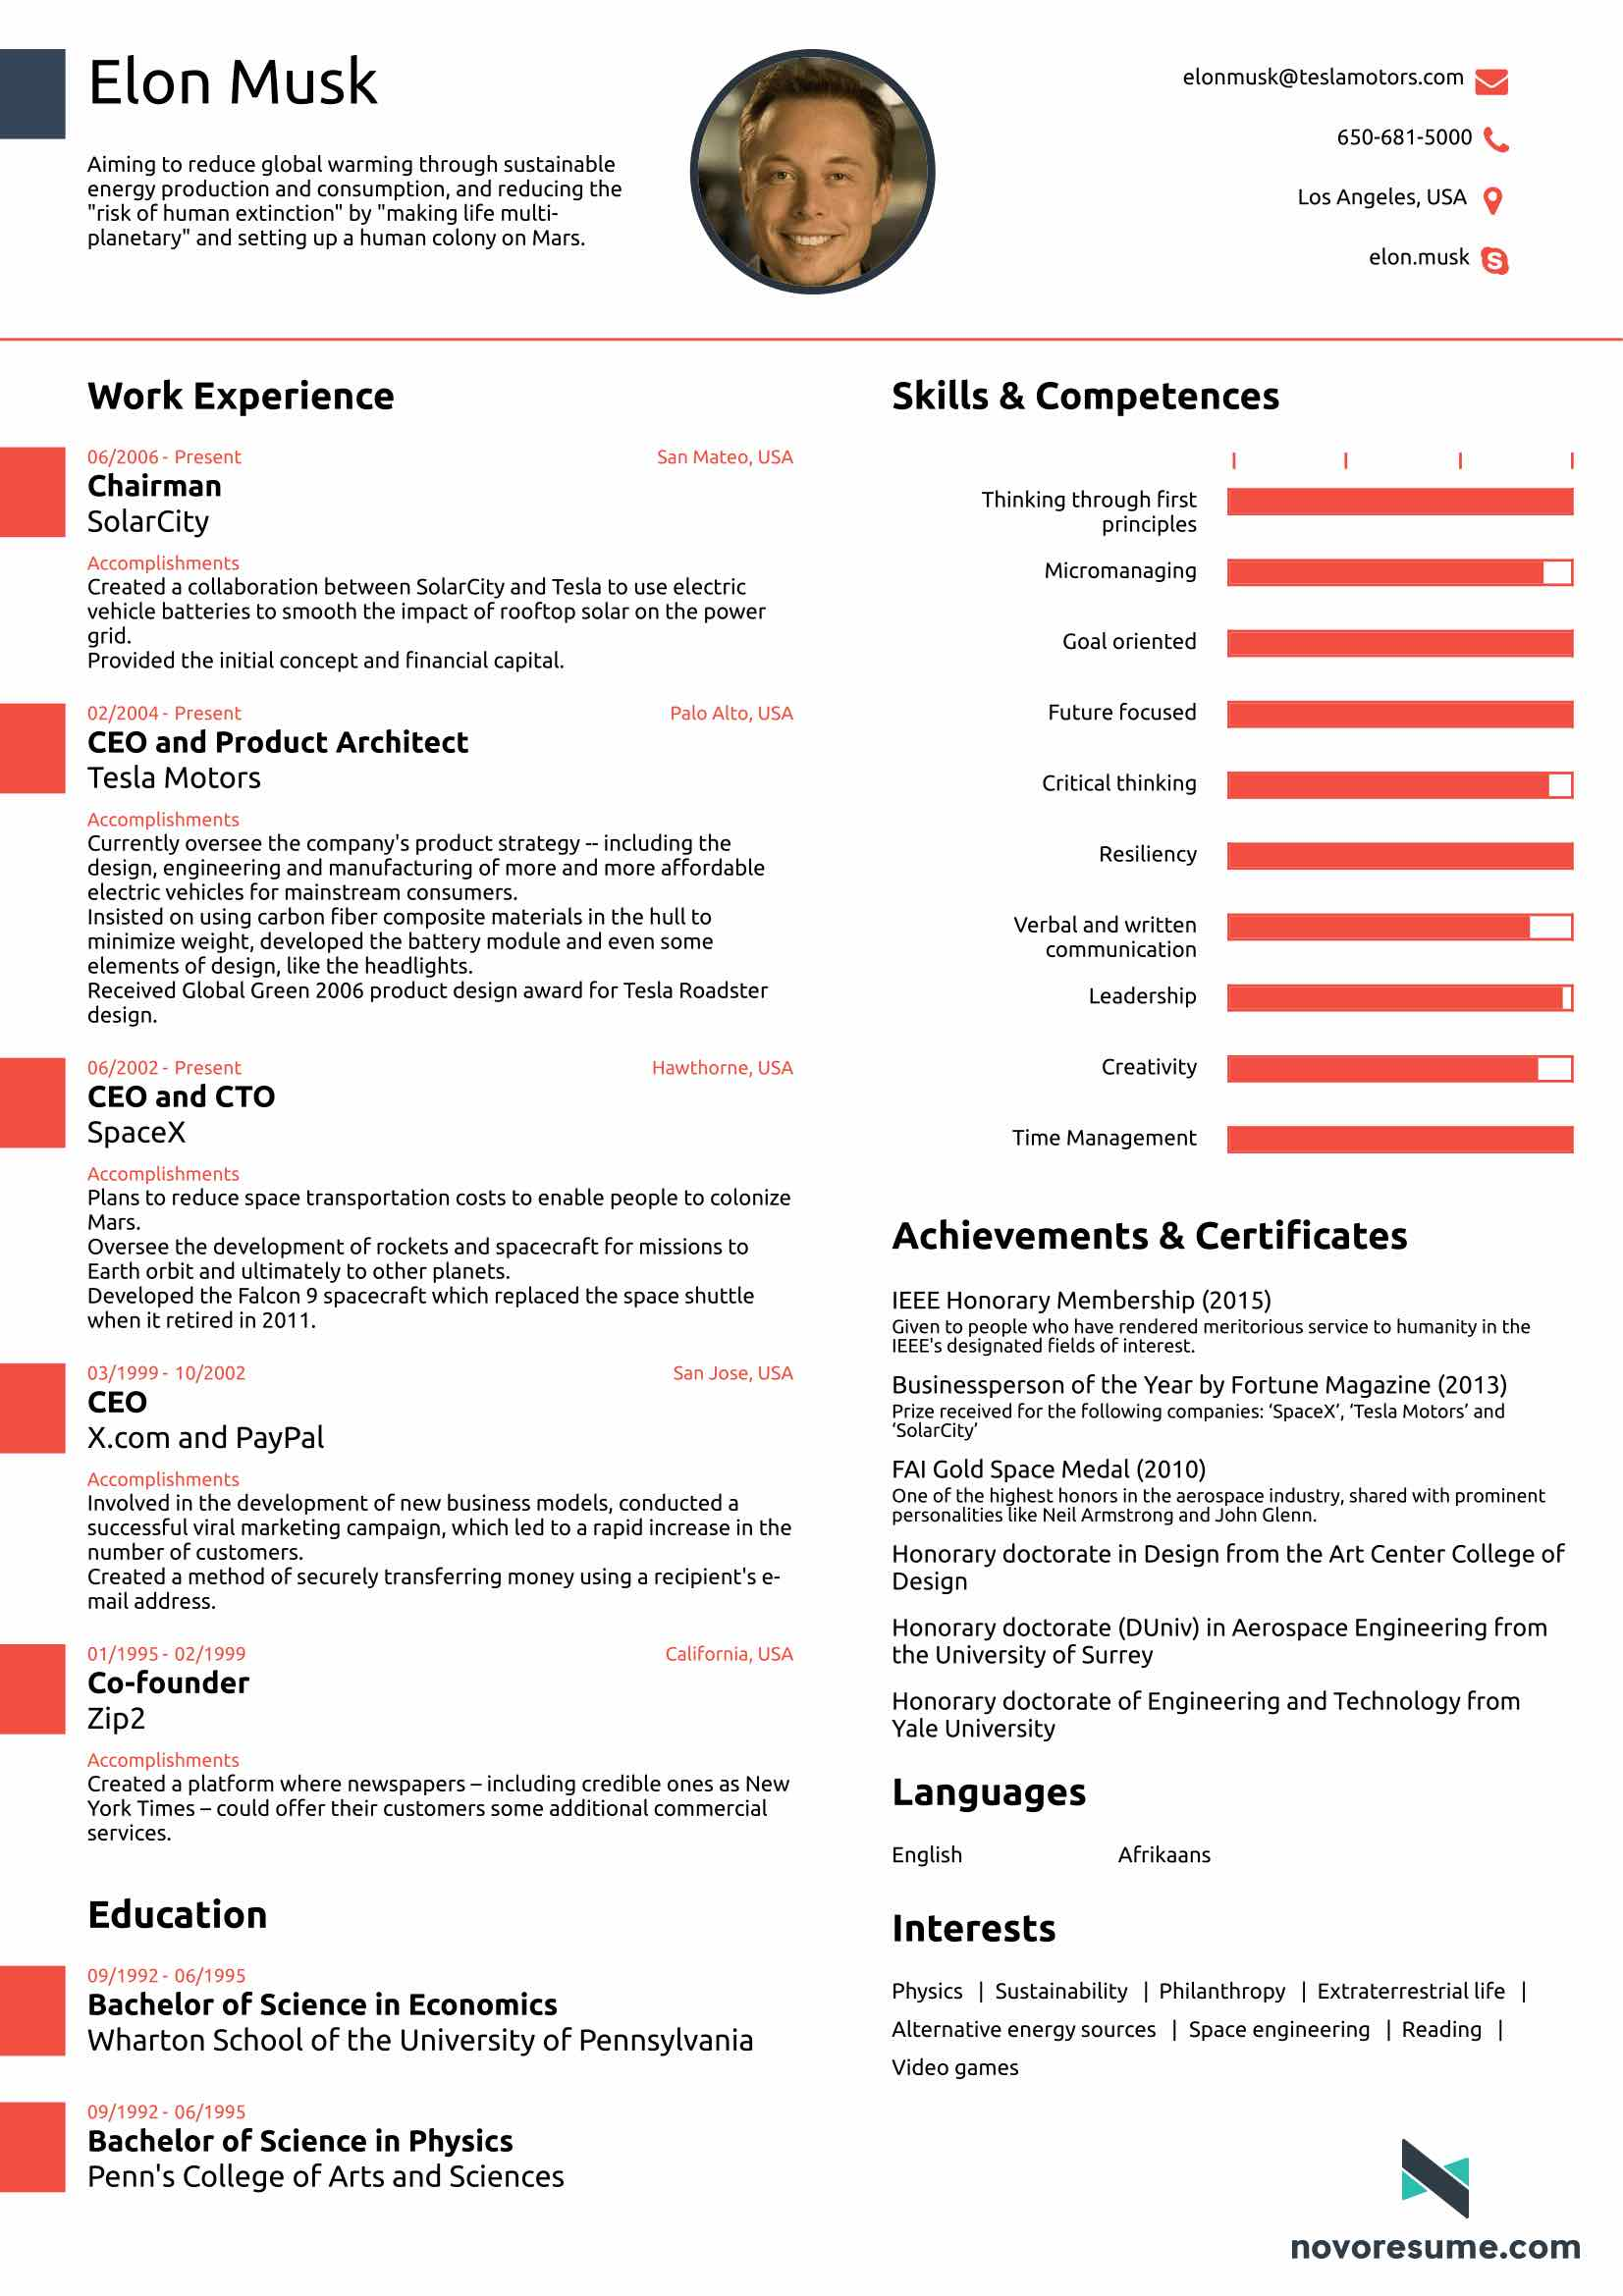 Lifeclever ; Give Your Rsum A Face Lift This Resume For Elon Musk Proves You Never Need To Use